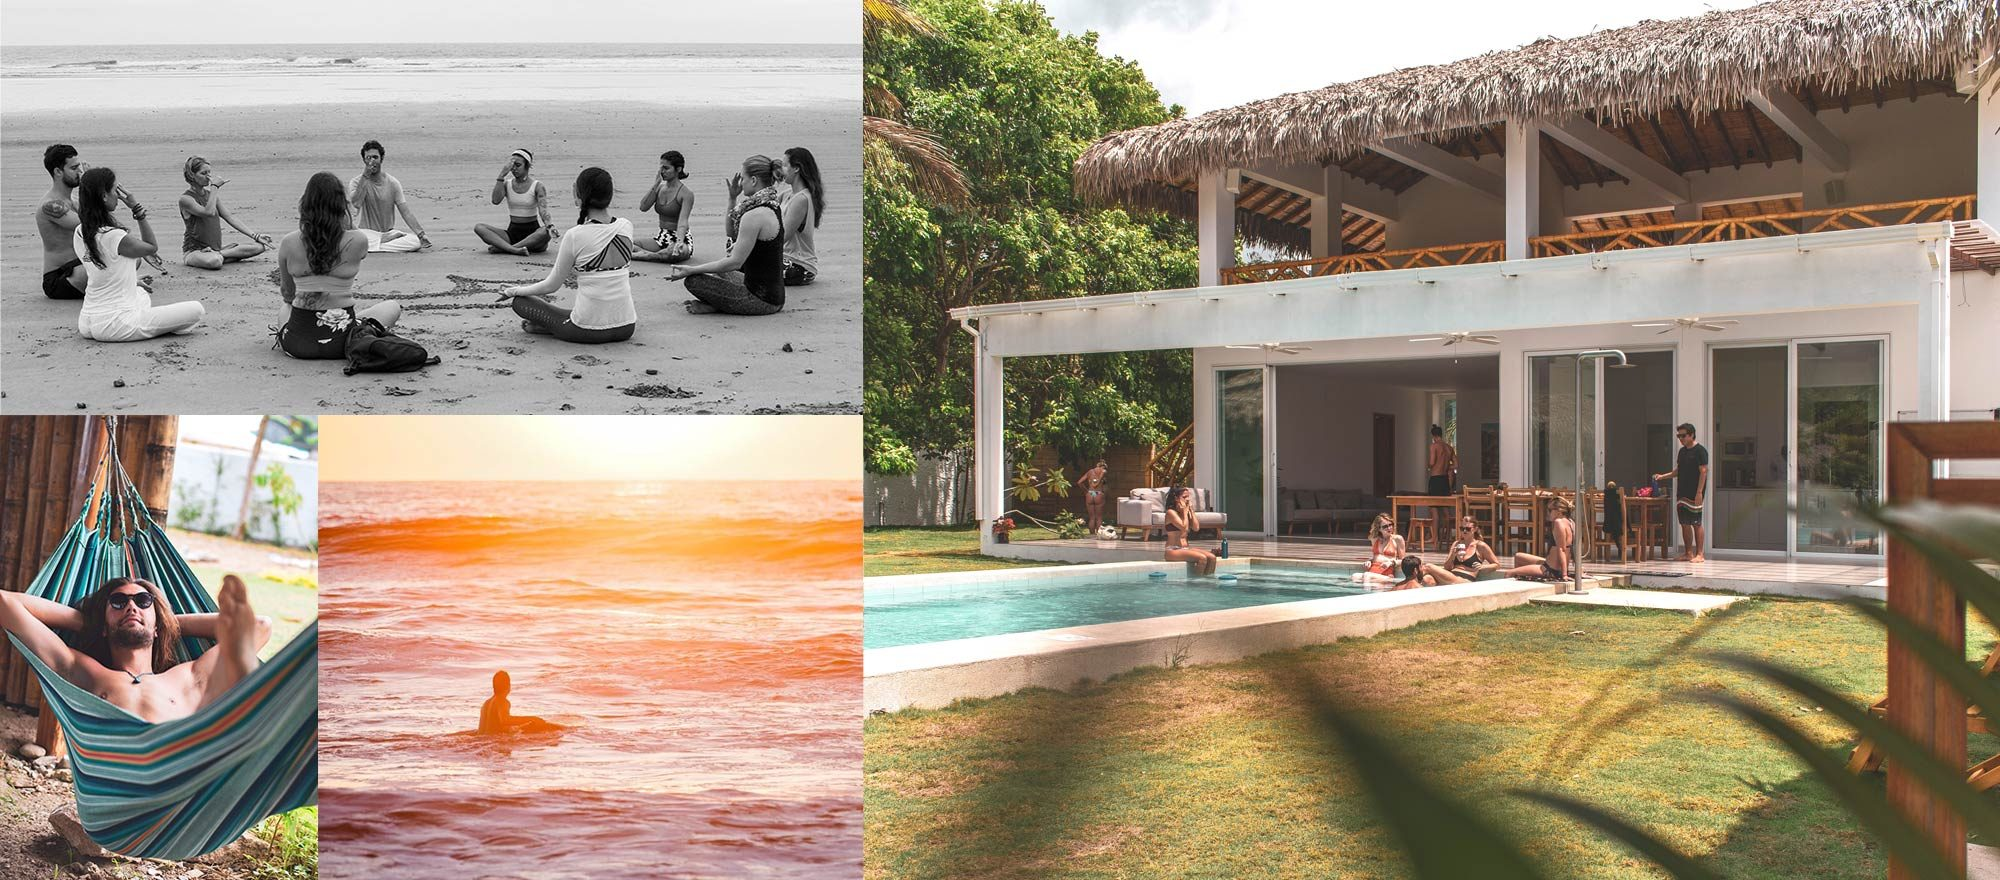 Vikara olon food healthy yoga and surf retreats